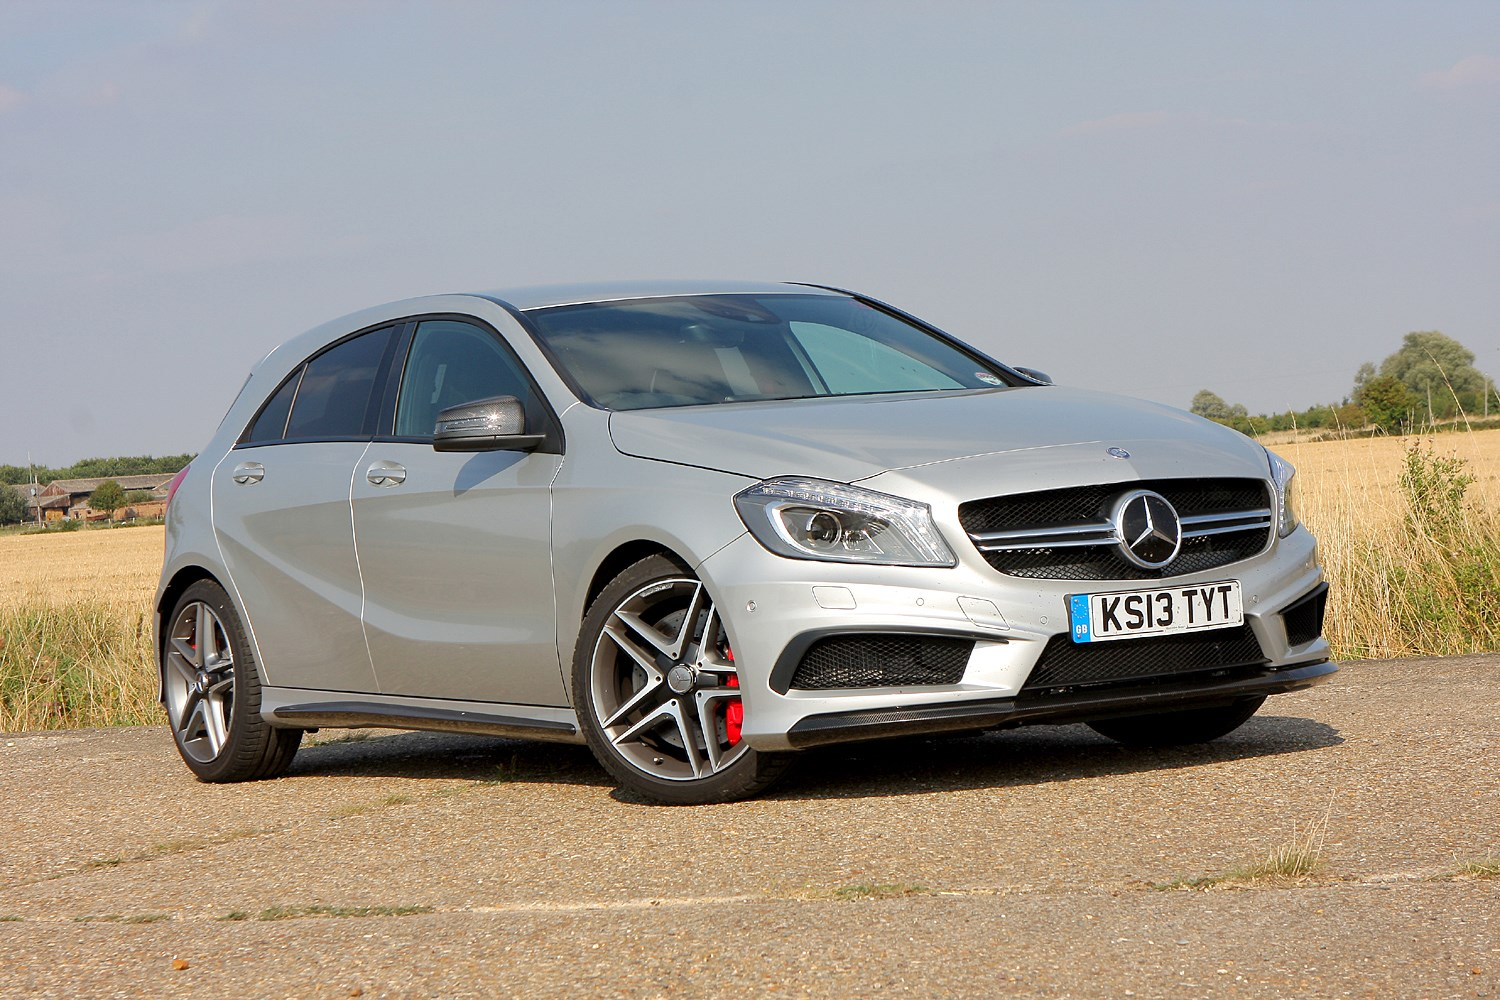 Mercedes benz a class amg 2013 running costs parkers for How much is a new mercedes benz